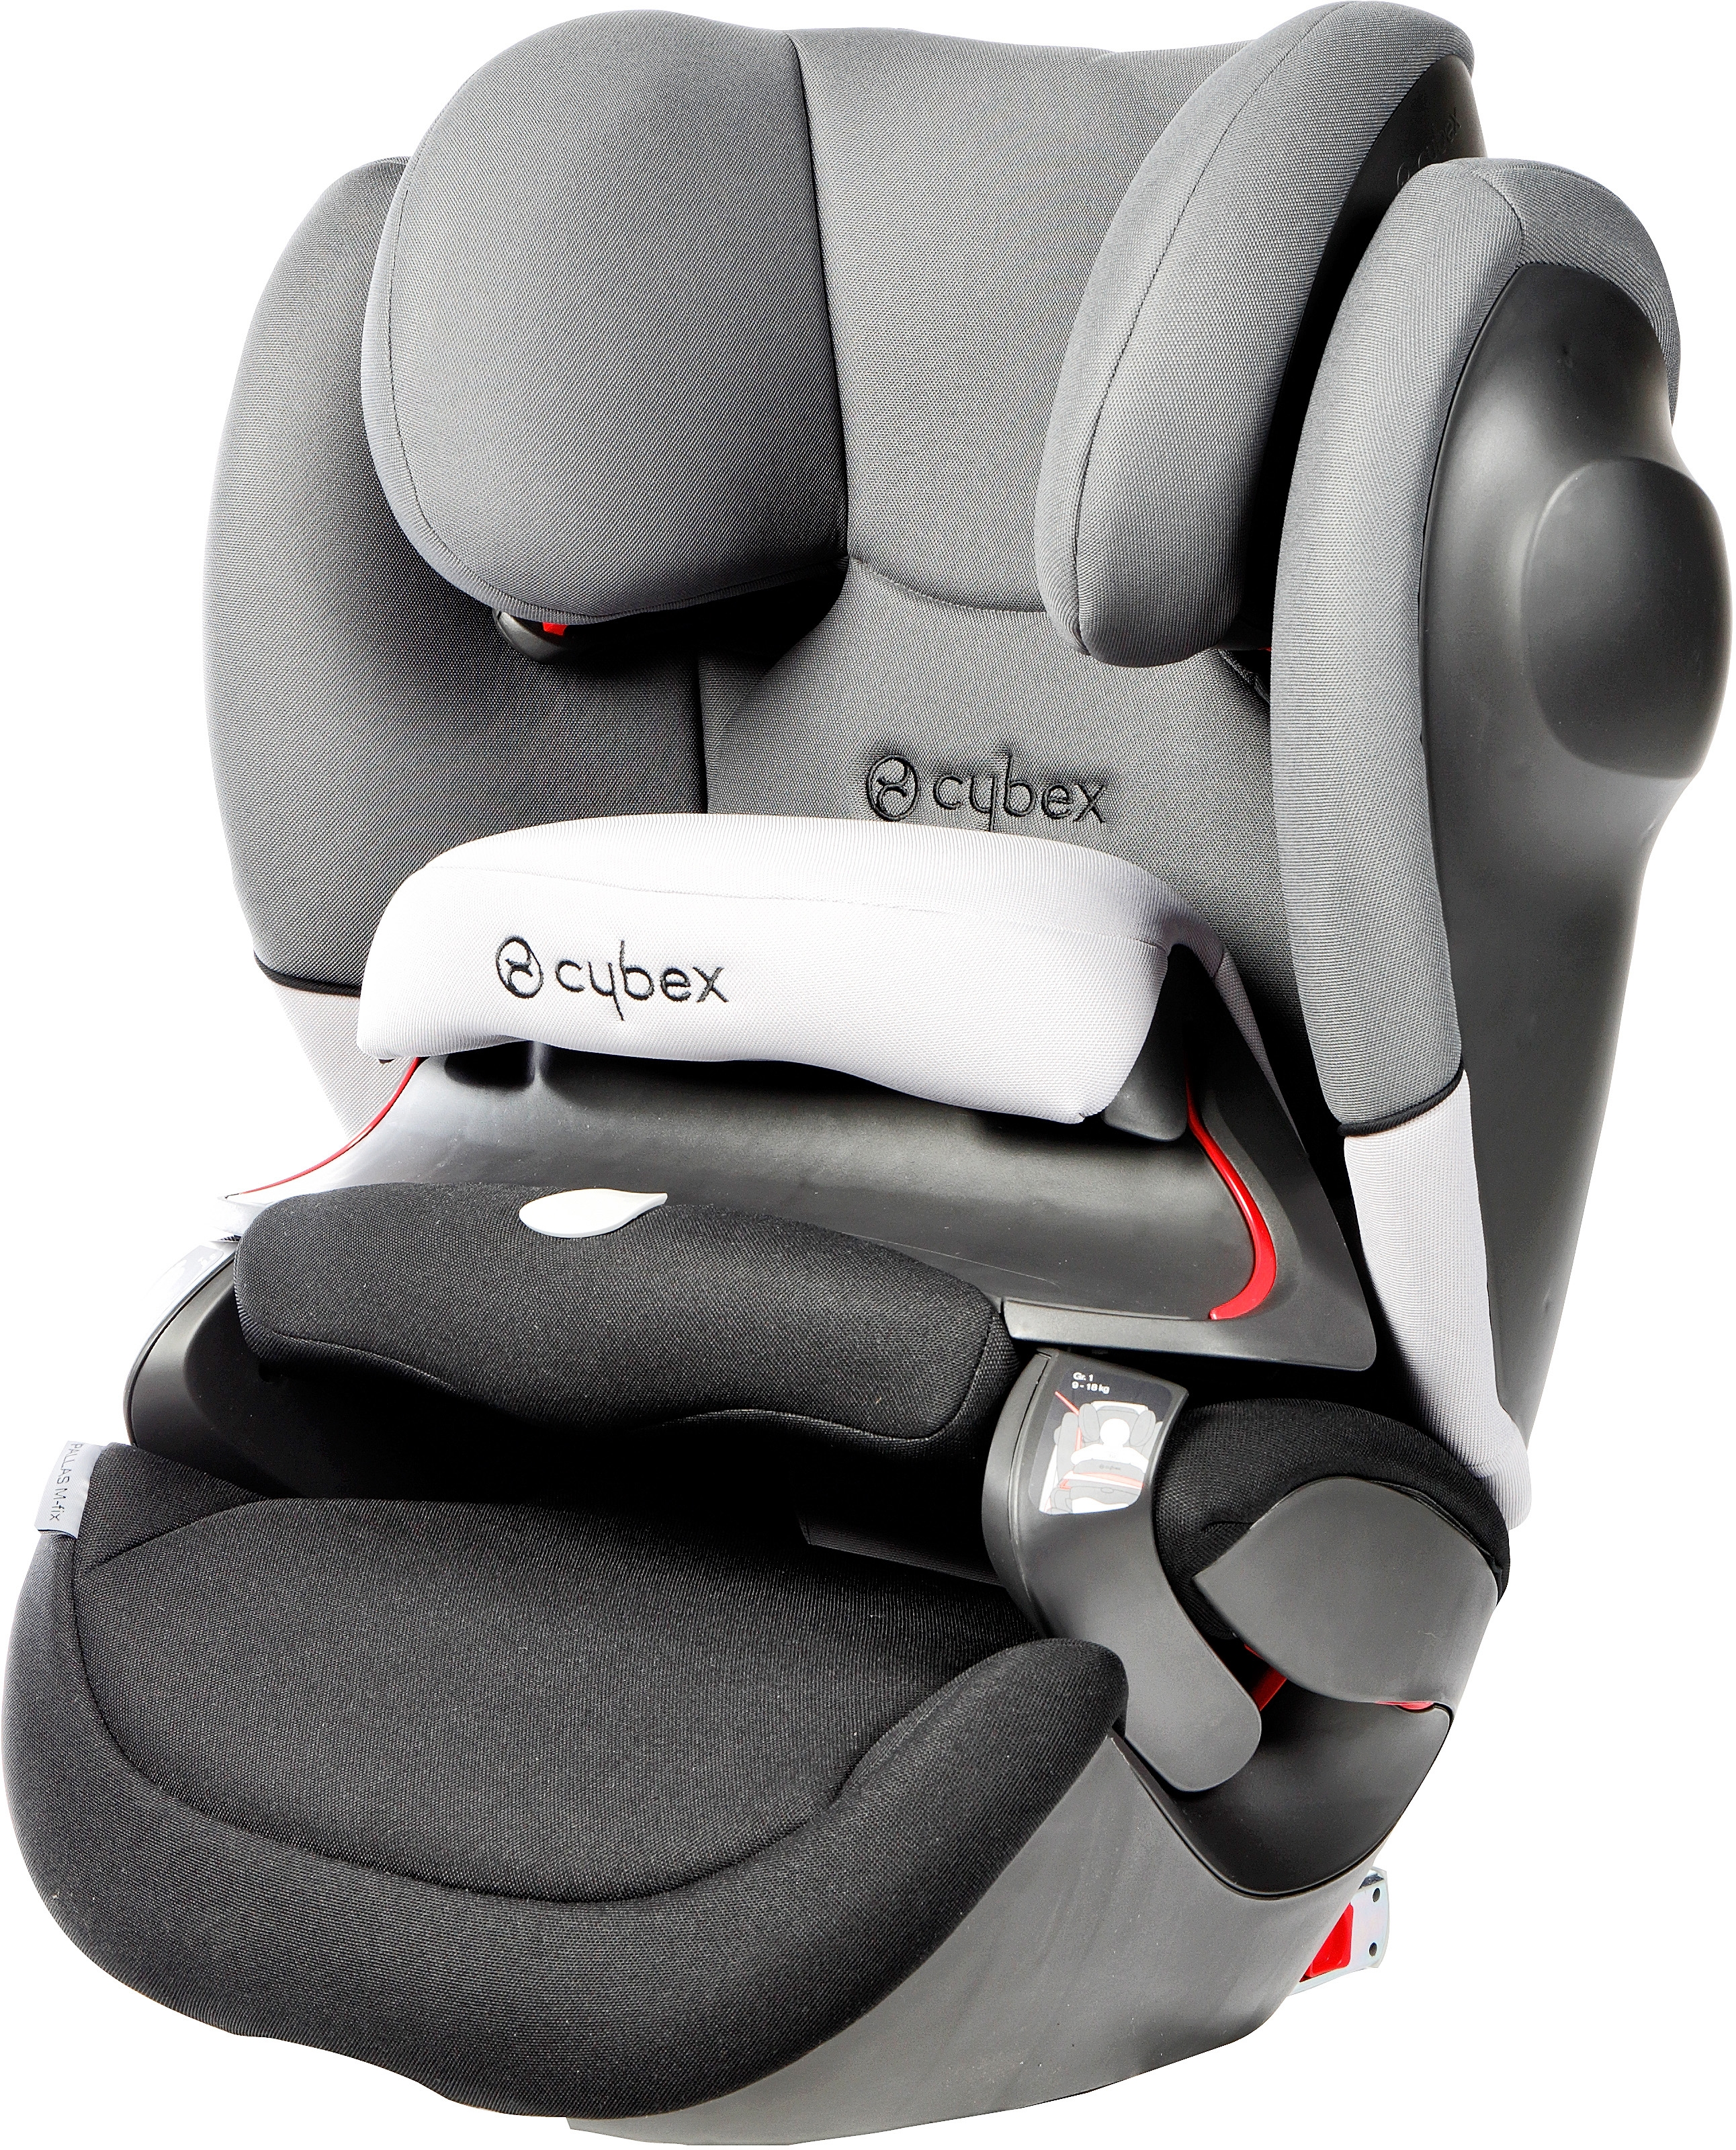 cybex pallas m fix sl test prijzen en specificaties. Black Bedroom Furniture Sets. Home Design Ideas